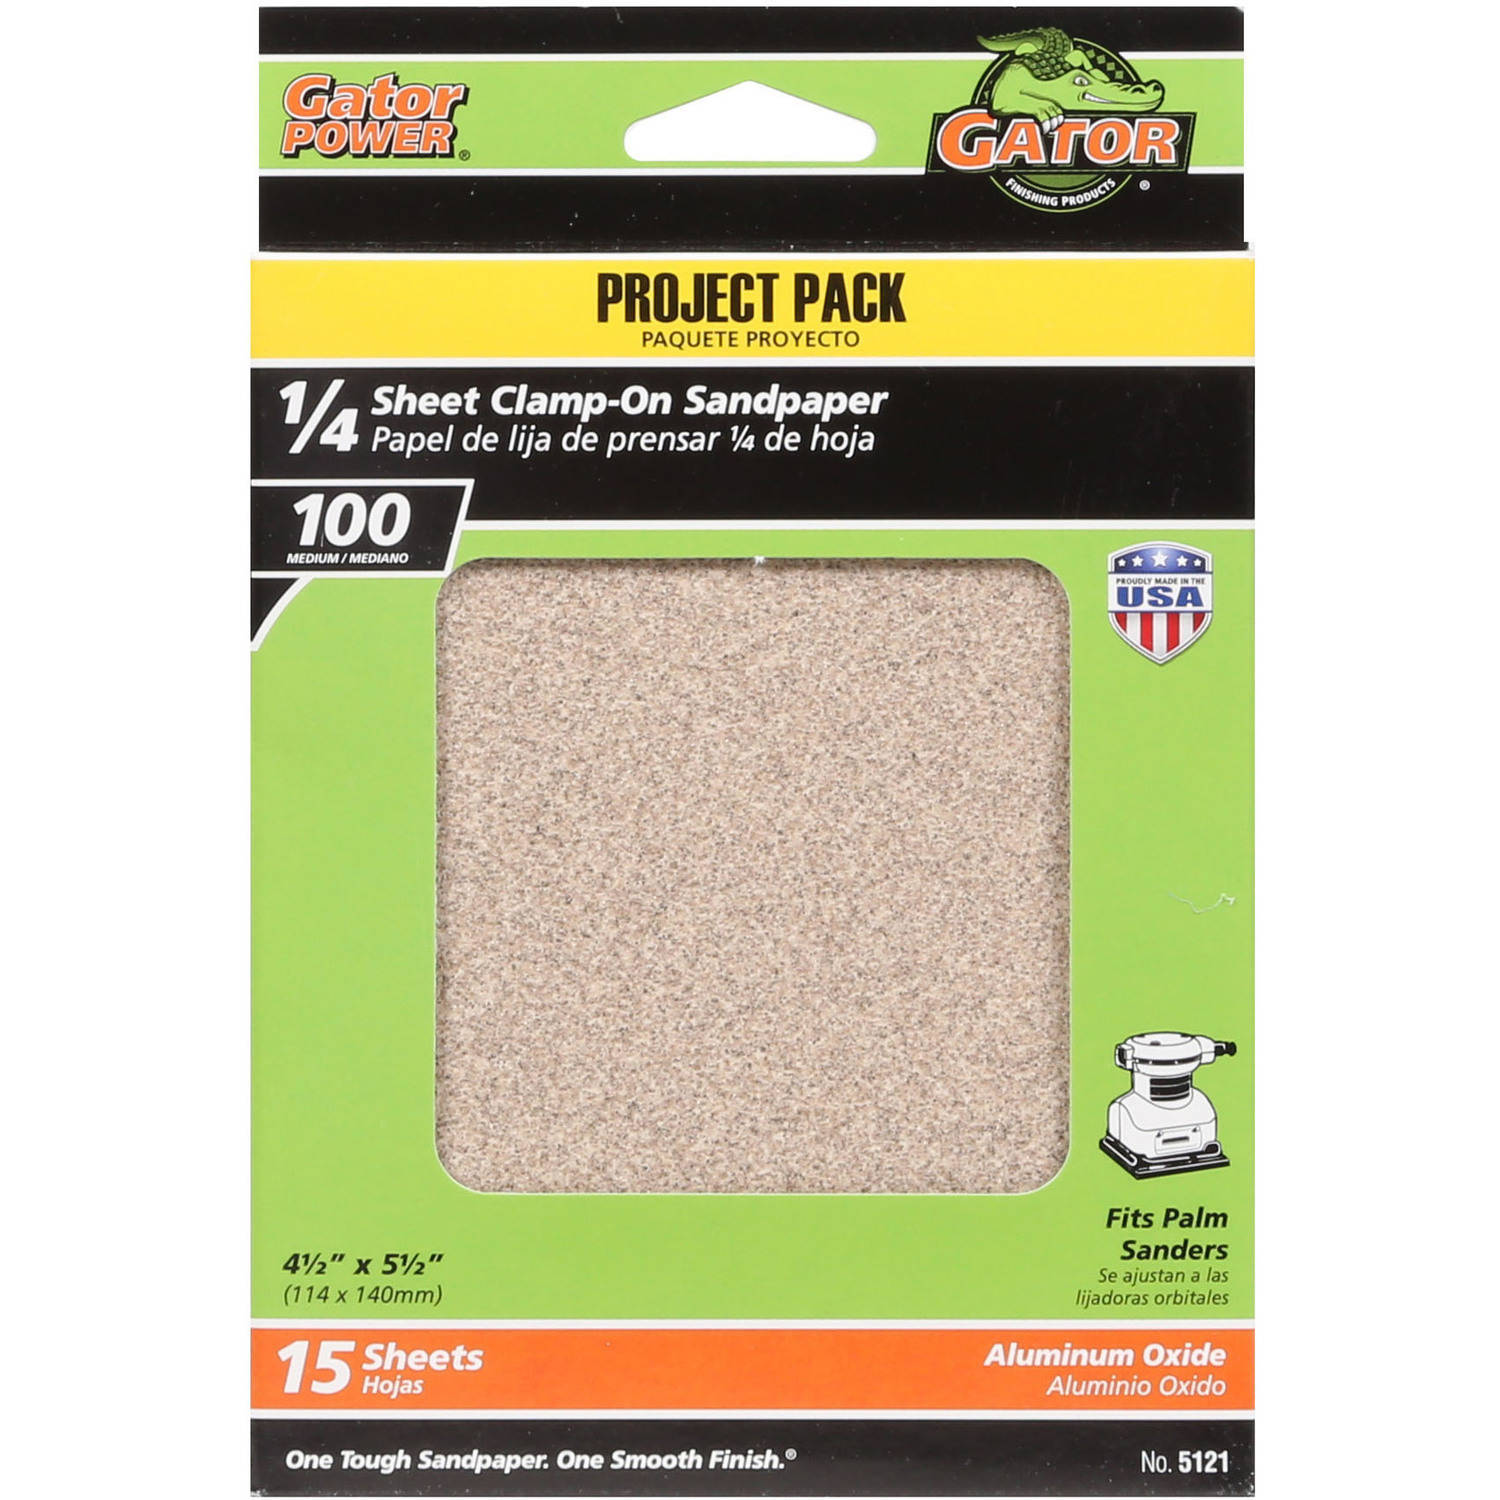 Gator Grit 4.5' x 5.5' 1/4 Sheet Clamp-On Sandpaper, 100G, 15pk